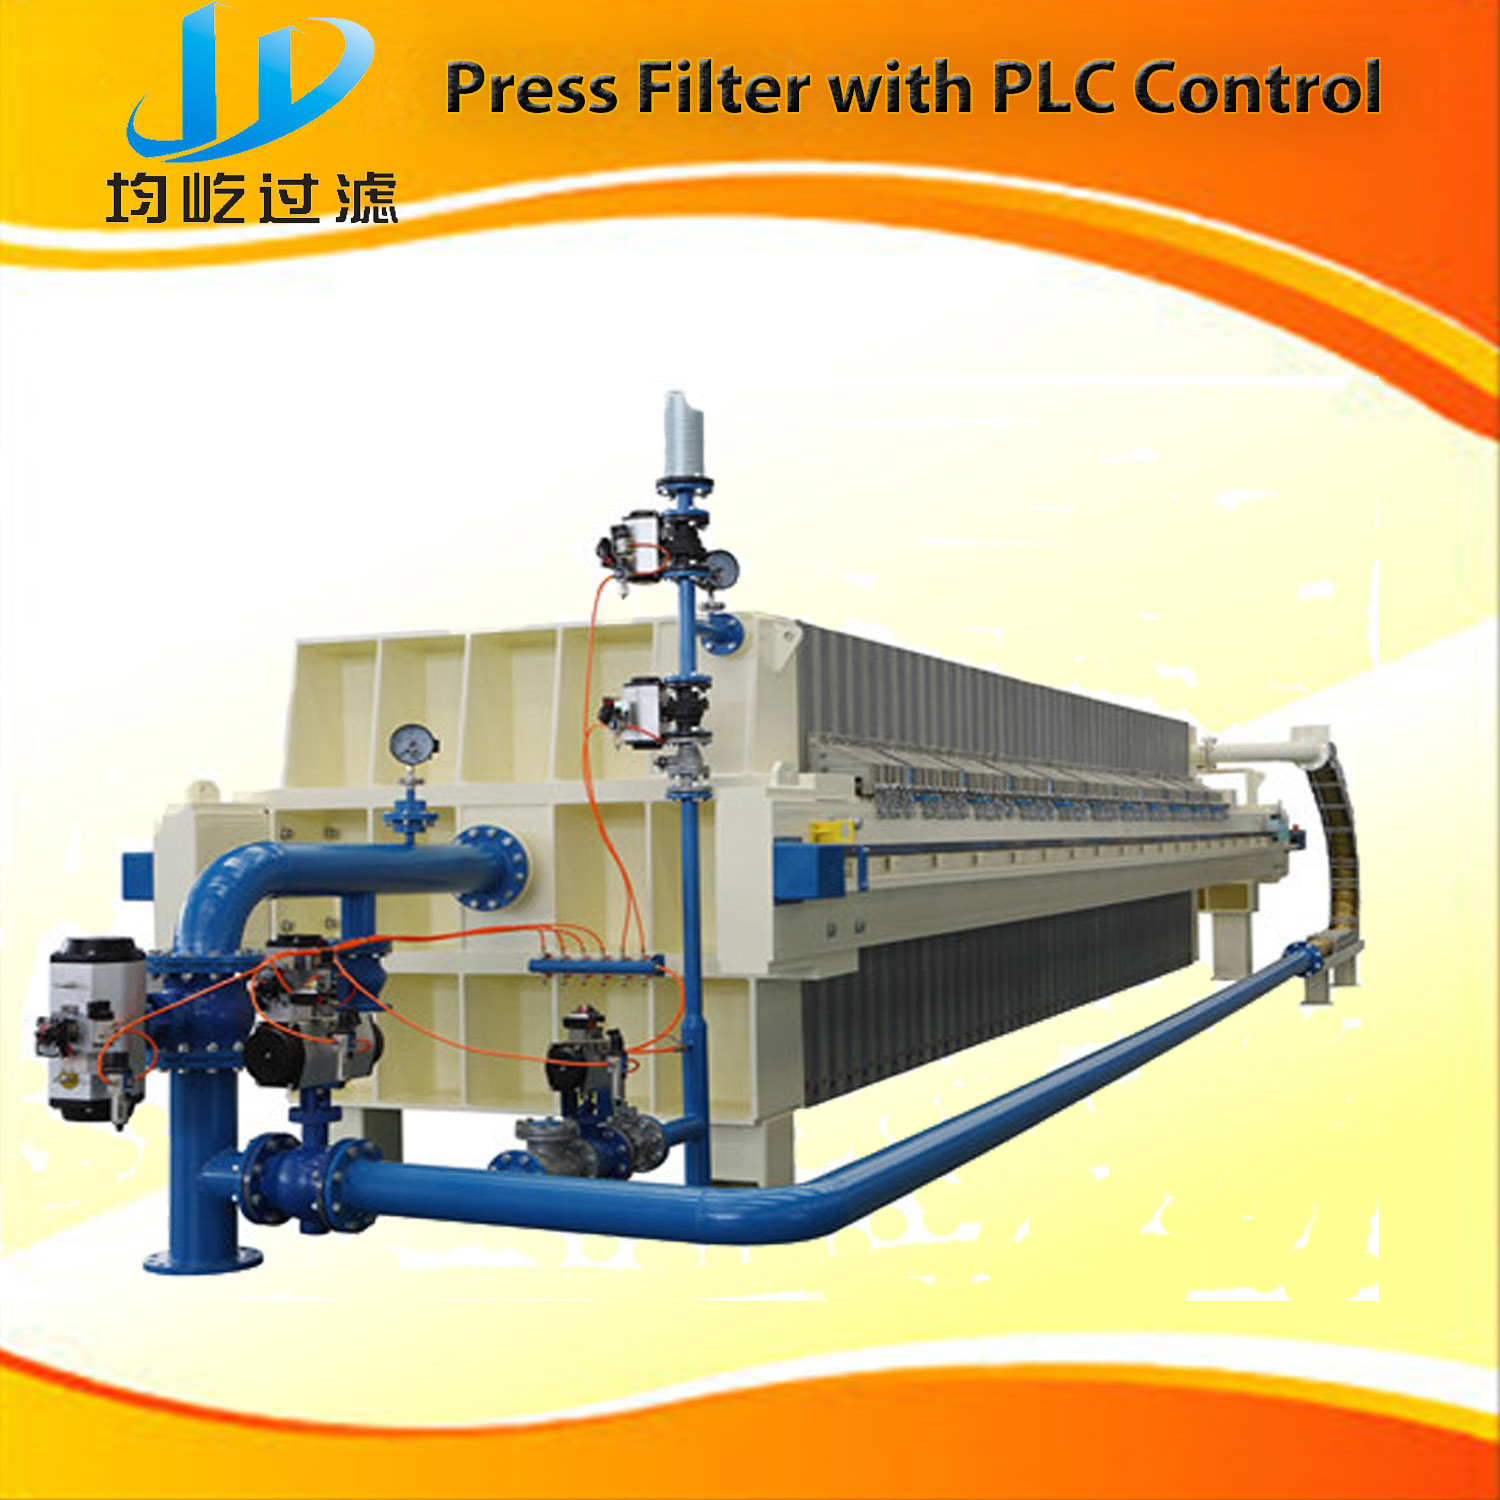 Automatic Filter Press with PLC Control